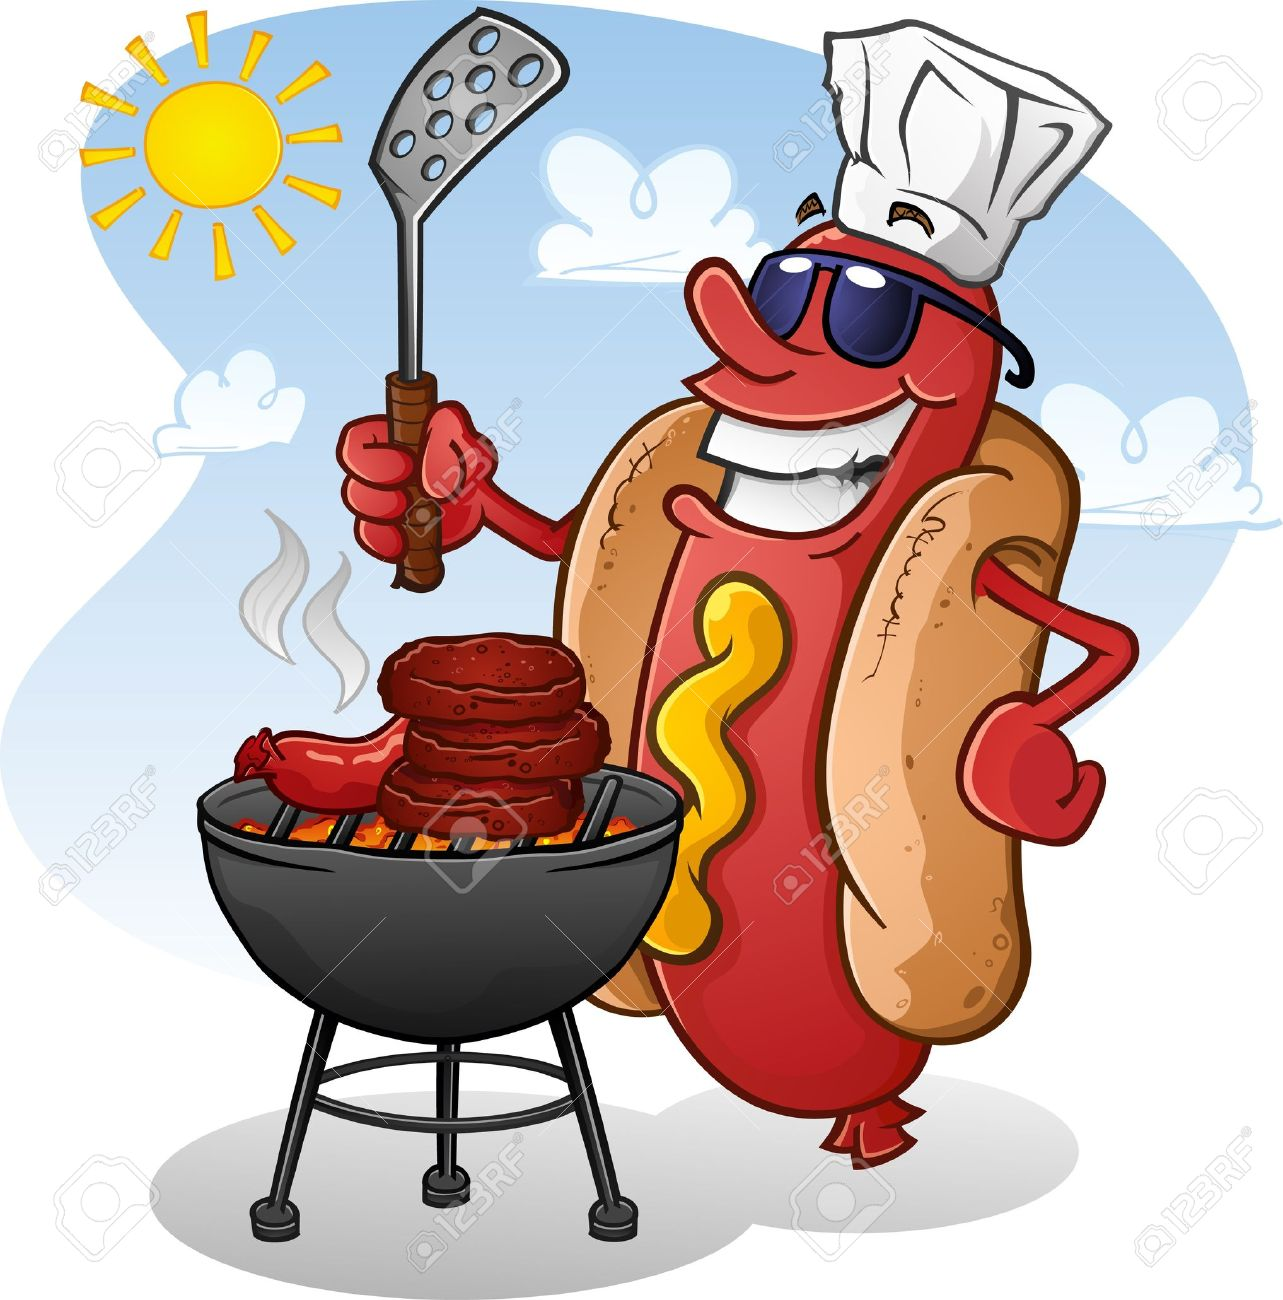 Cookout border clipart hot dog cookout invite stock vector art - Grilling Hot Dog Cartoon Character Grilling Burgers